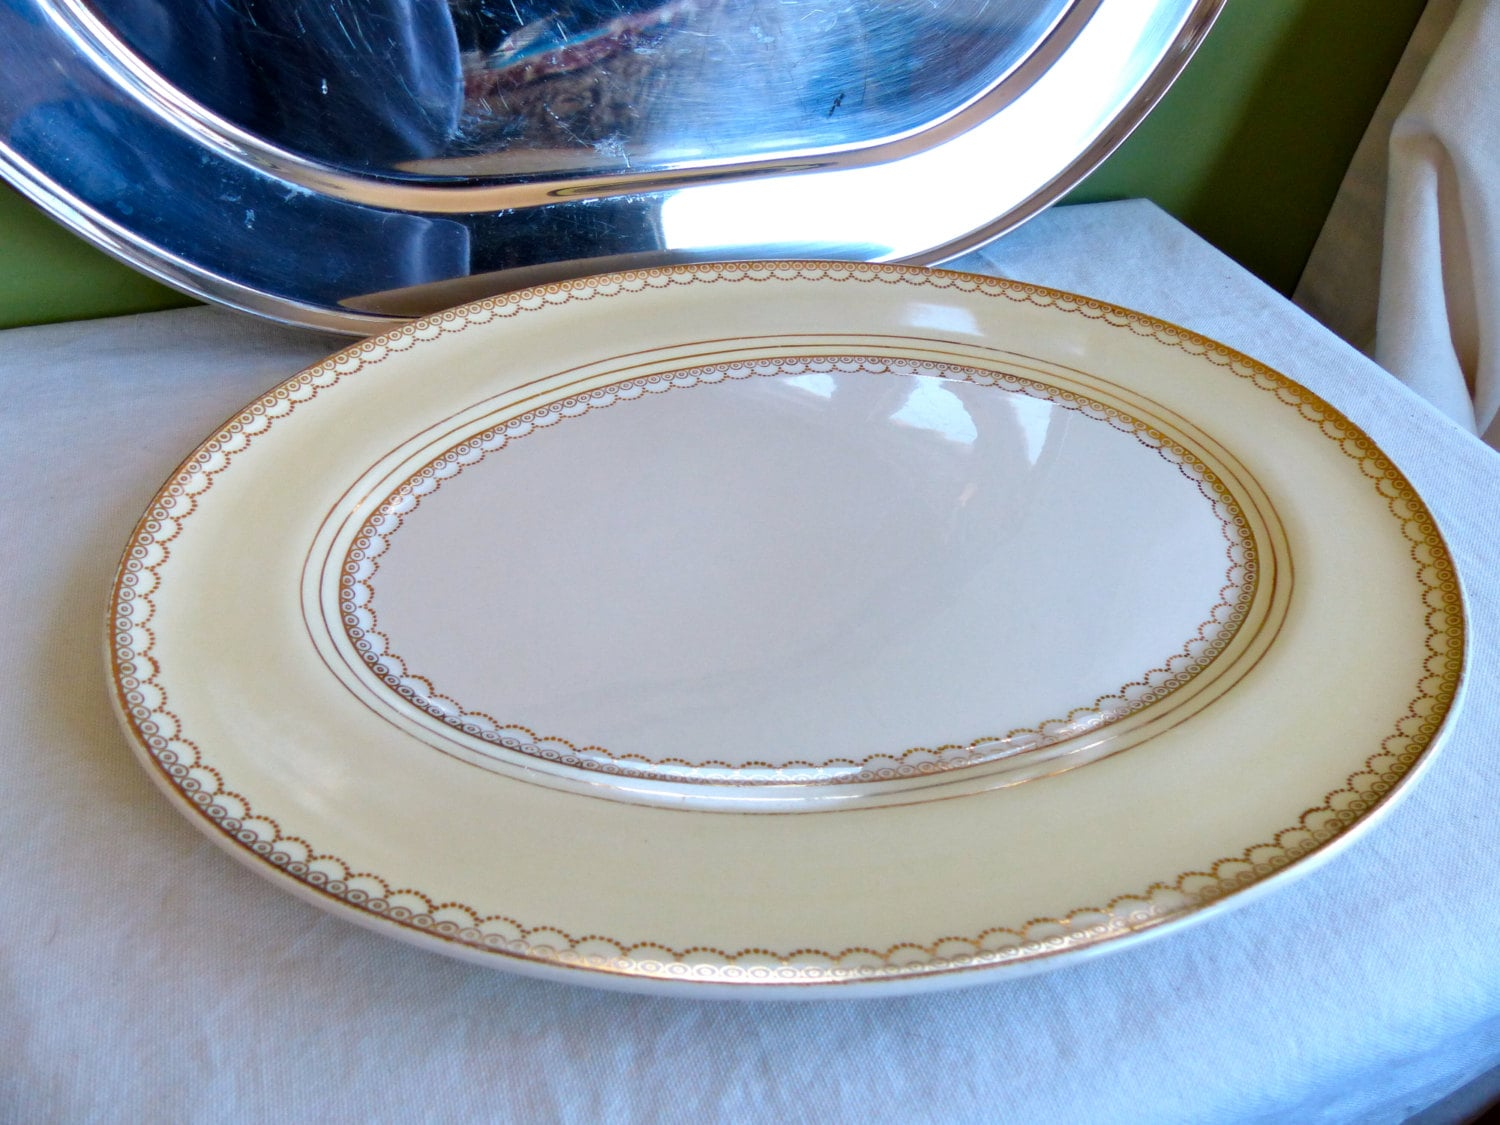 Limoges China Patterns Gold Trim Best Decorating Design